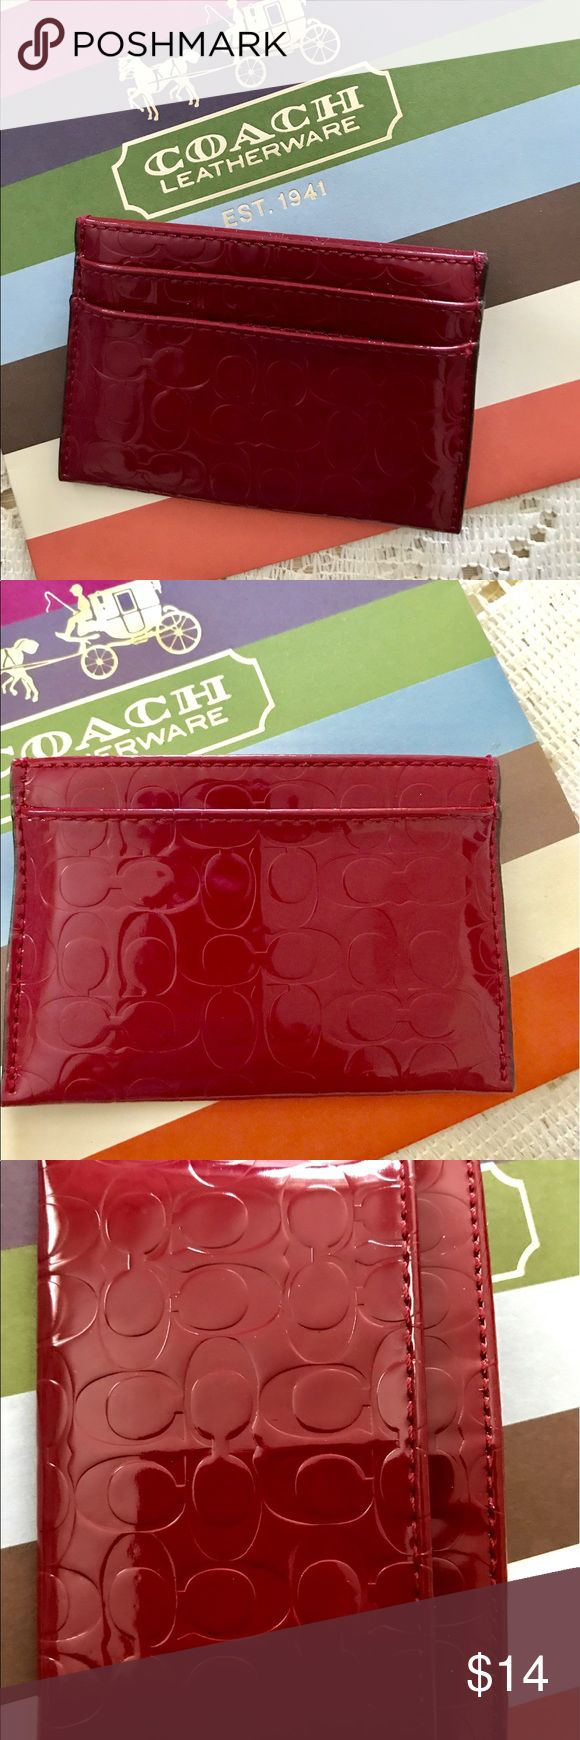 Coach Embossed Signature Credit Card Holder Authentic gently used credit card holder 3 outside slots 1 multifunctional open pocket in the middle Coach Bags Wallets